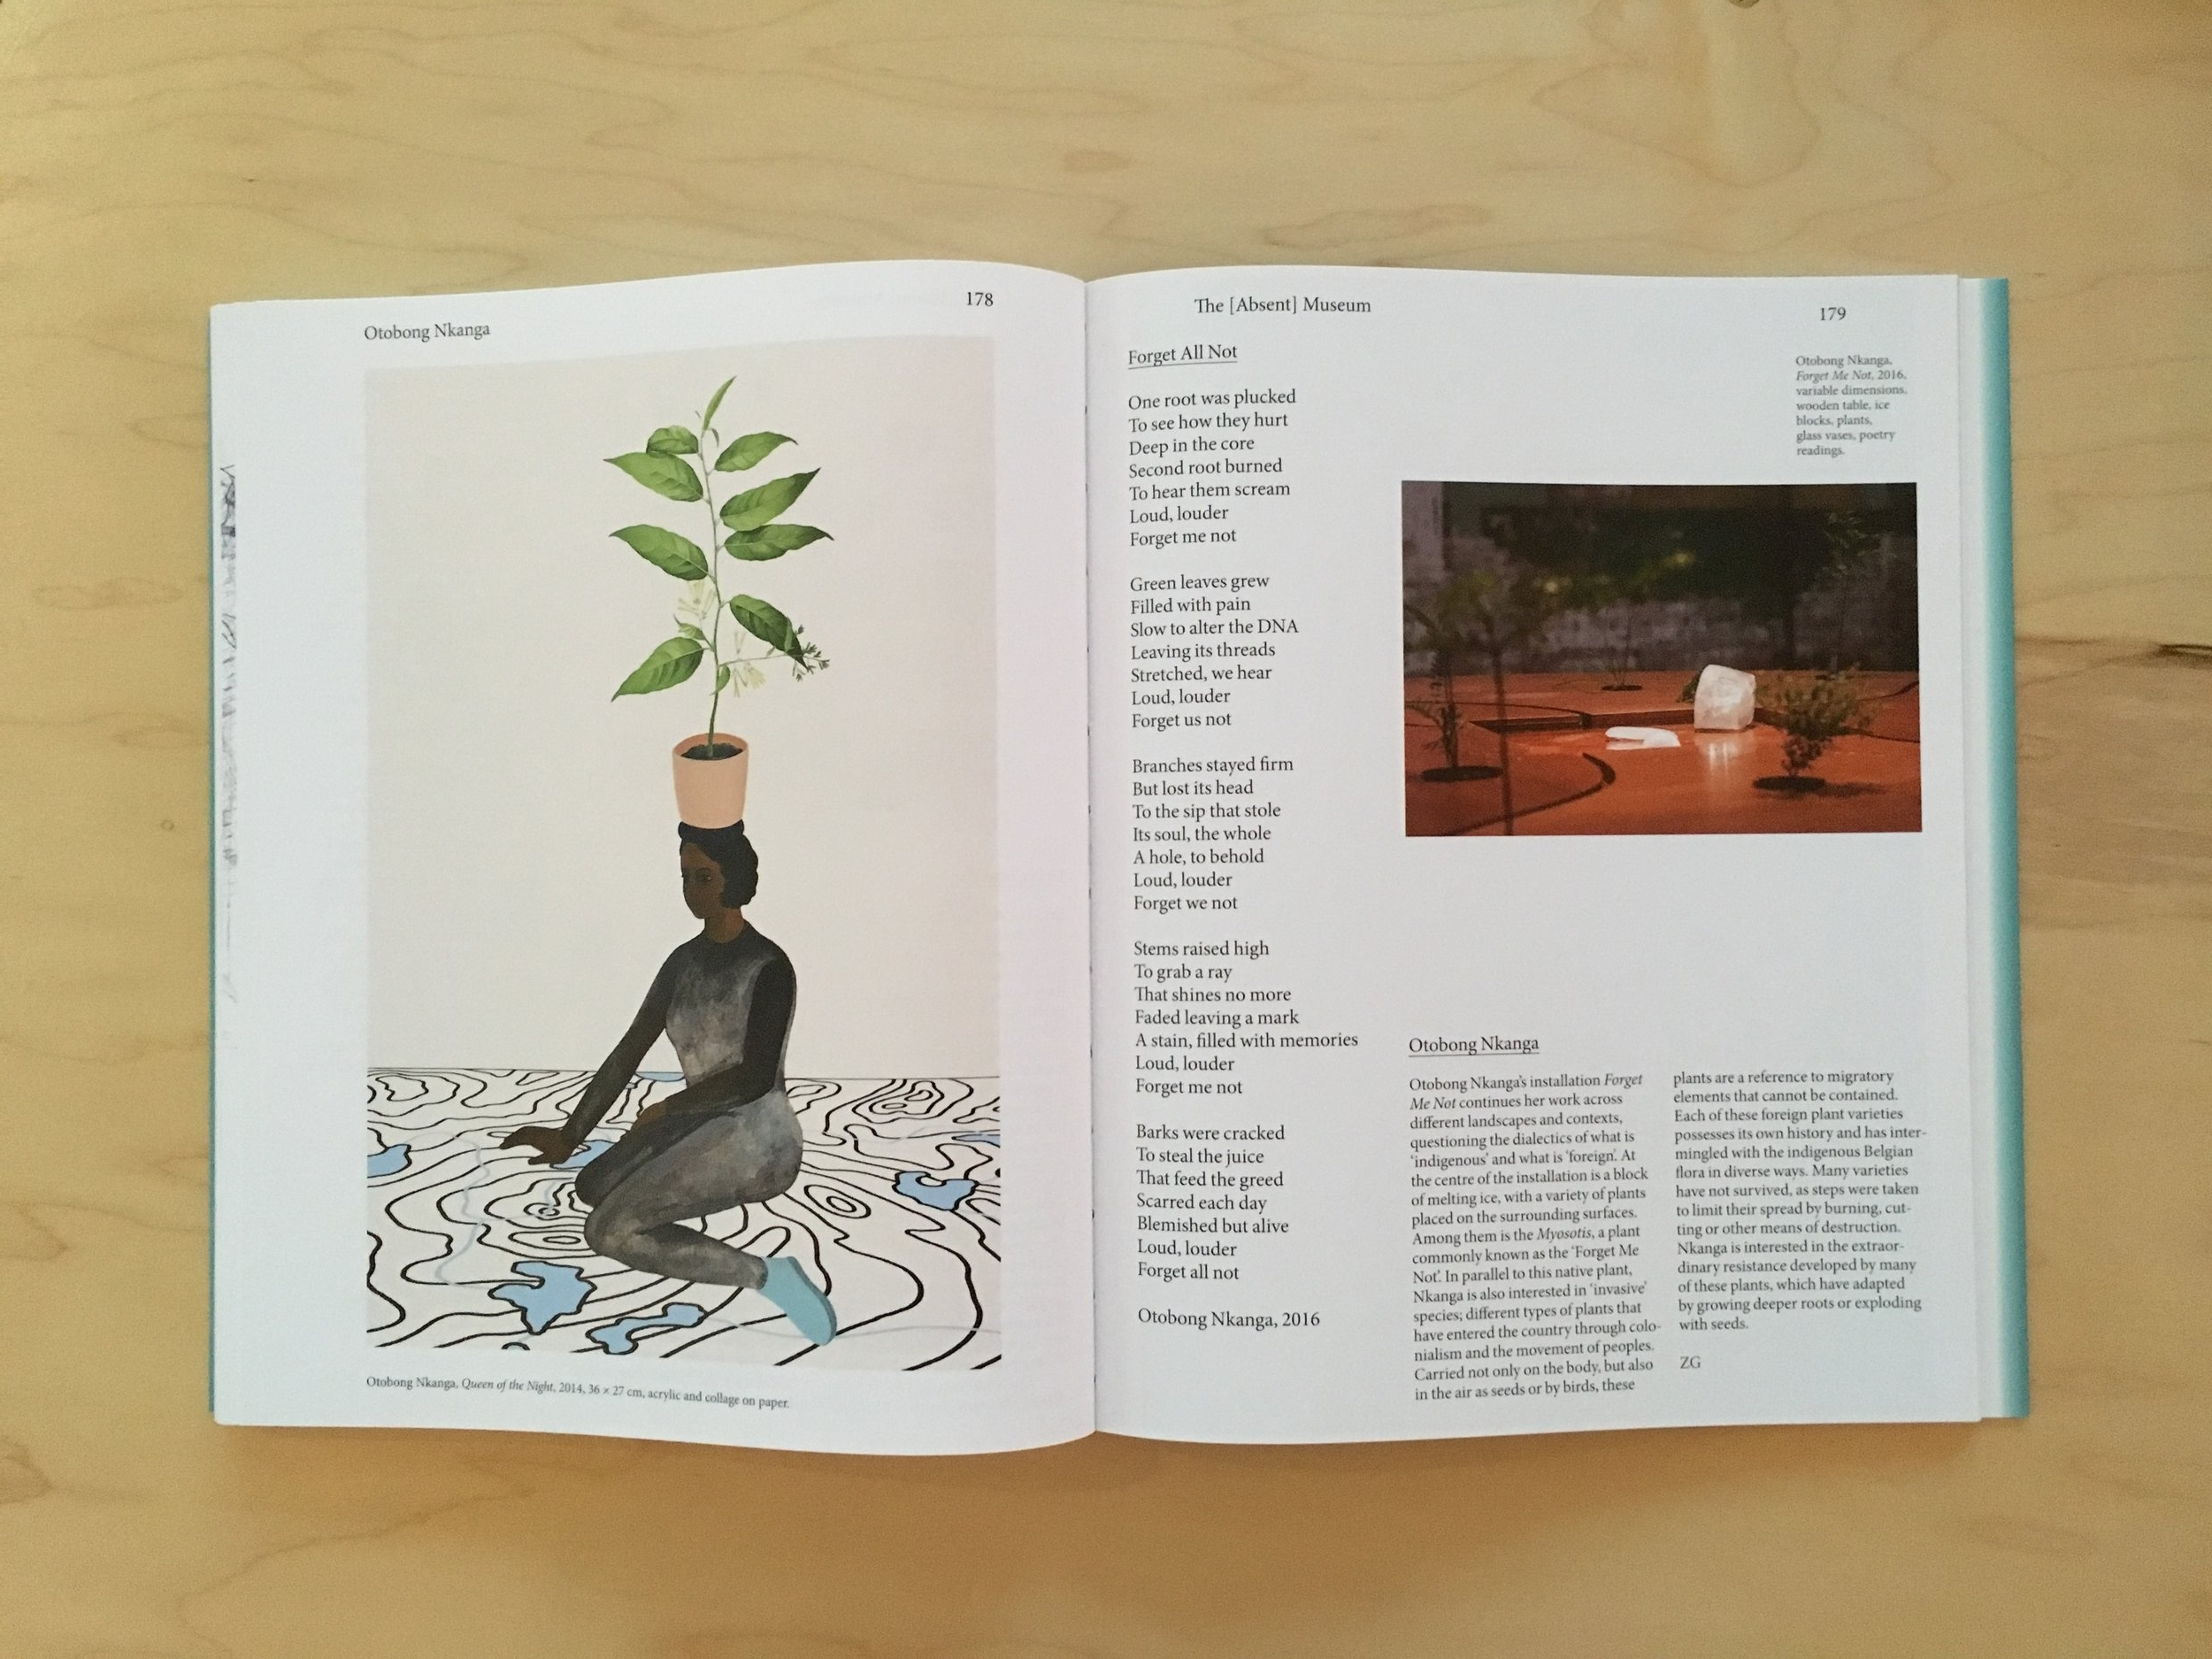 Otobong Nkanga, Queen of the Night , 2014, and Forget Me Not , 2016, in The Absent Museum: Blueprint for a Museum of Contemporary Art for the Capital of Europe .Edited by Dirk Snauwaert (Brussels: WIELS, New Haven: Yale University Press, 2017).